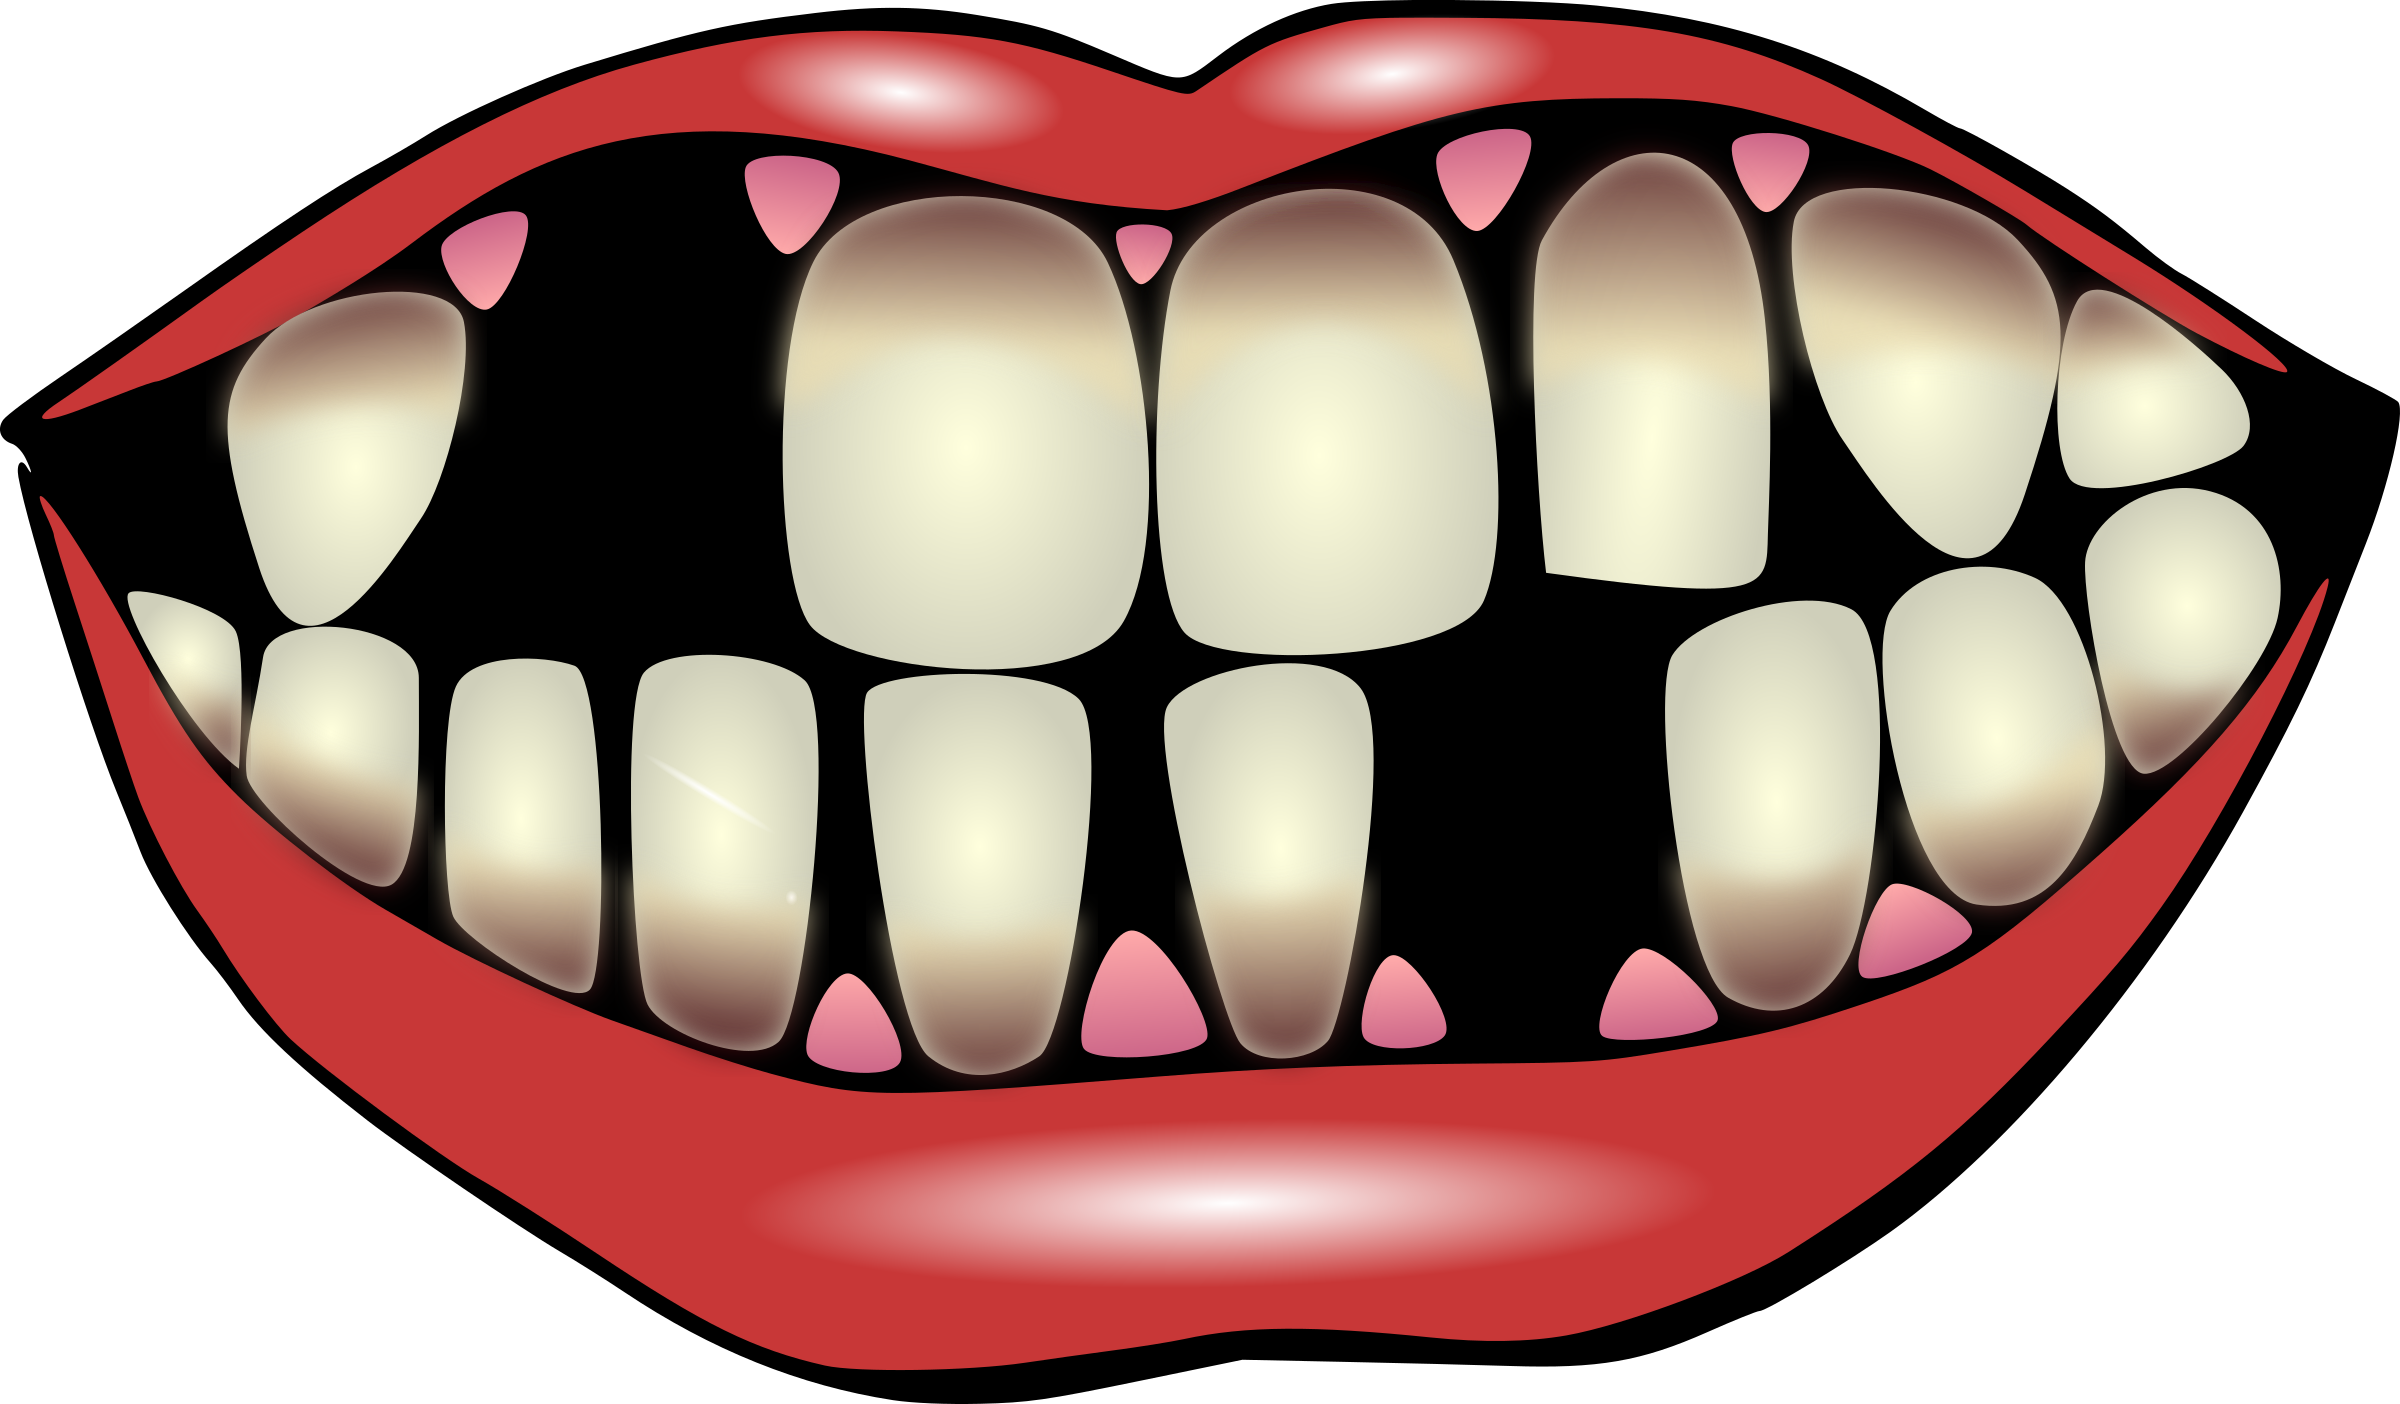 Smoking clipart industry Pediatric Effect Side May Dentist